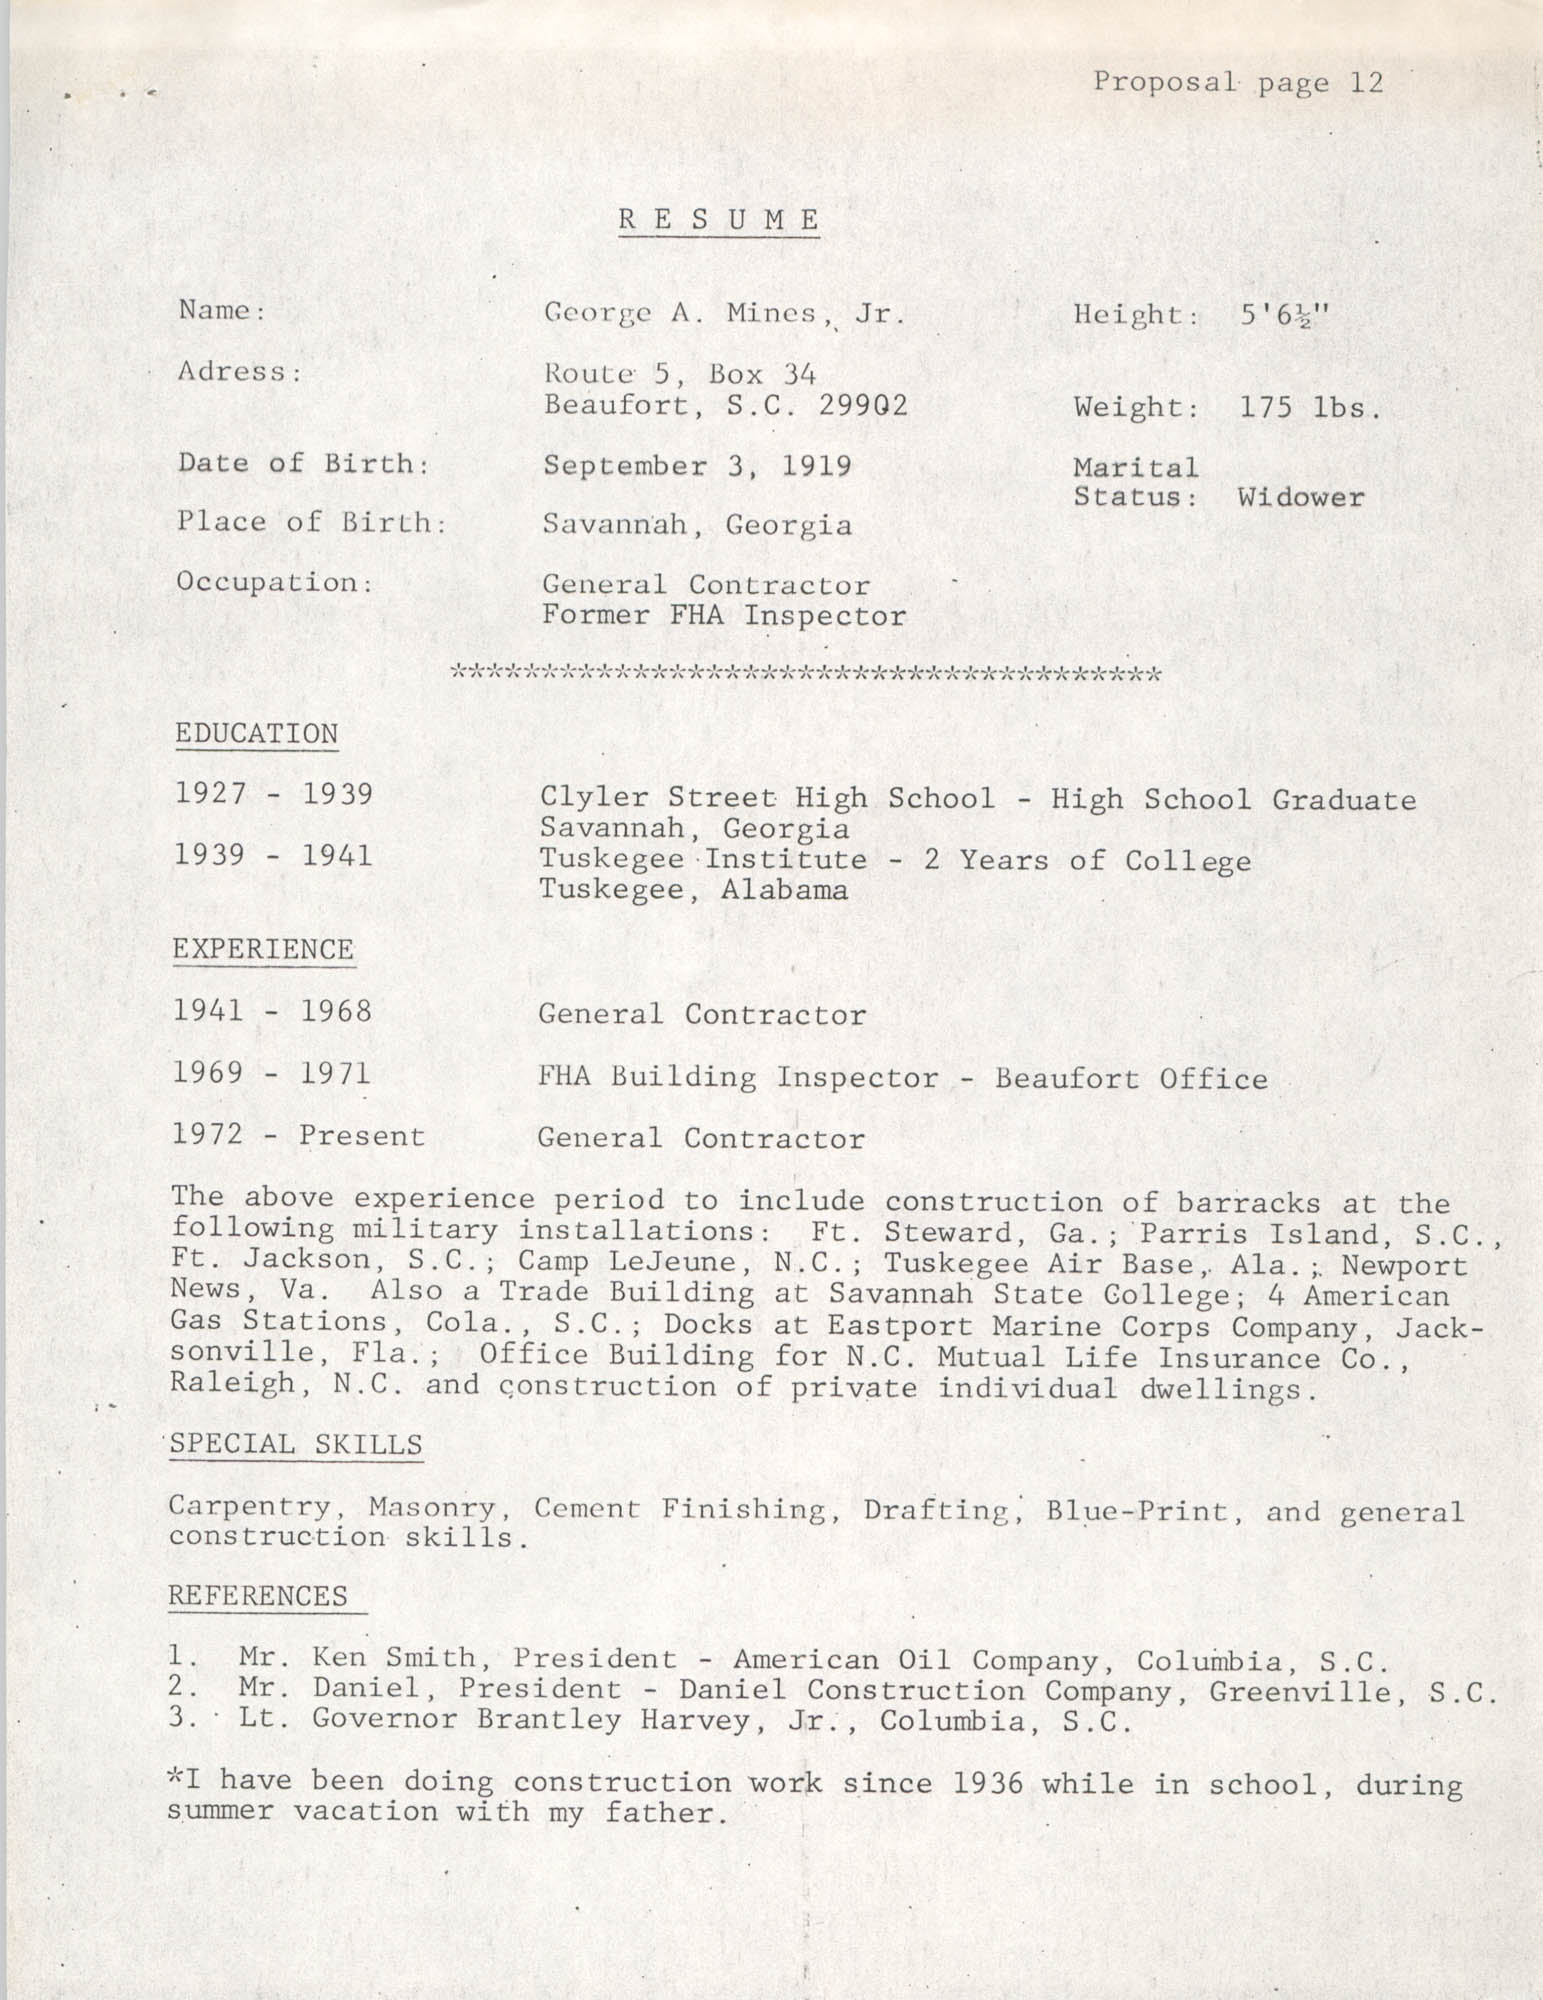 Operation Step-up, Proposal, Page 12